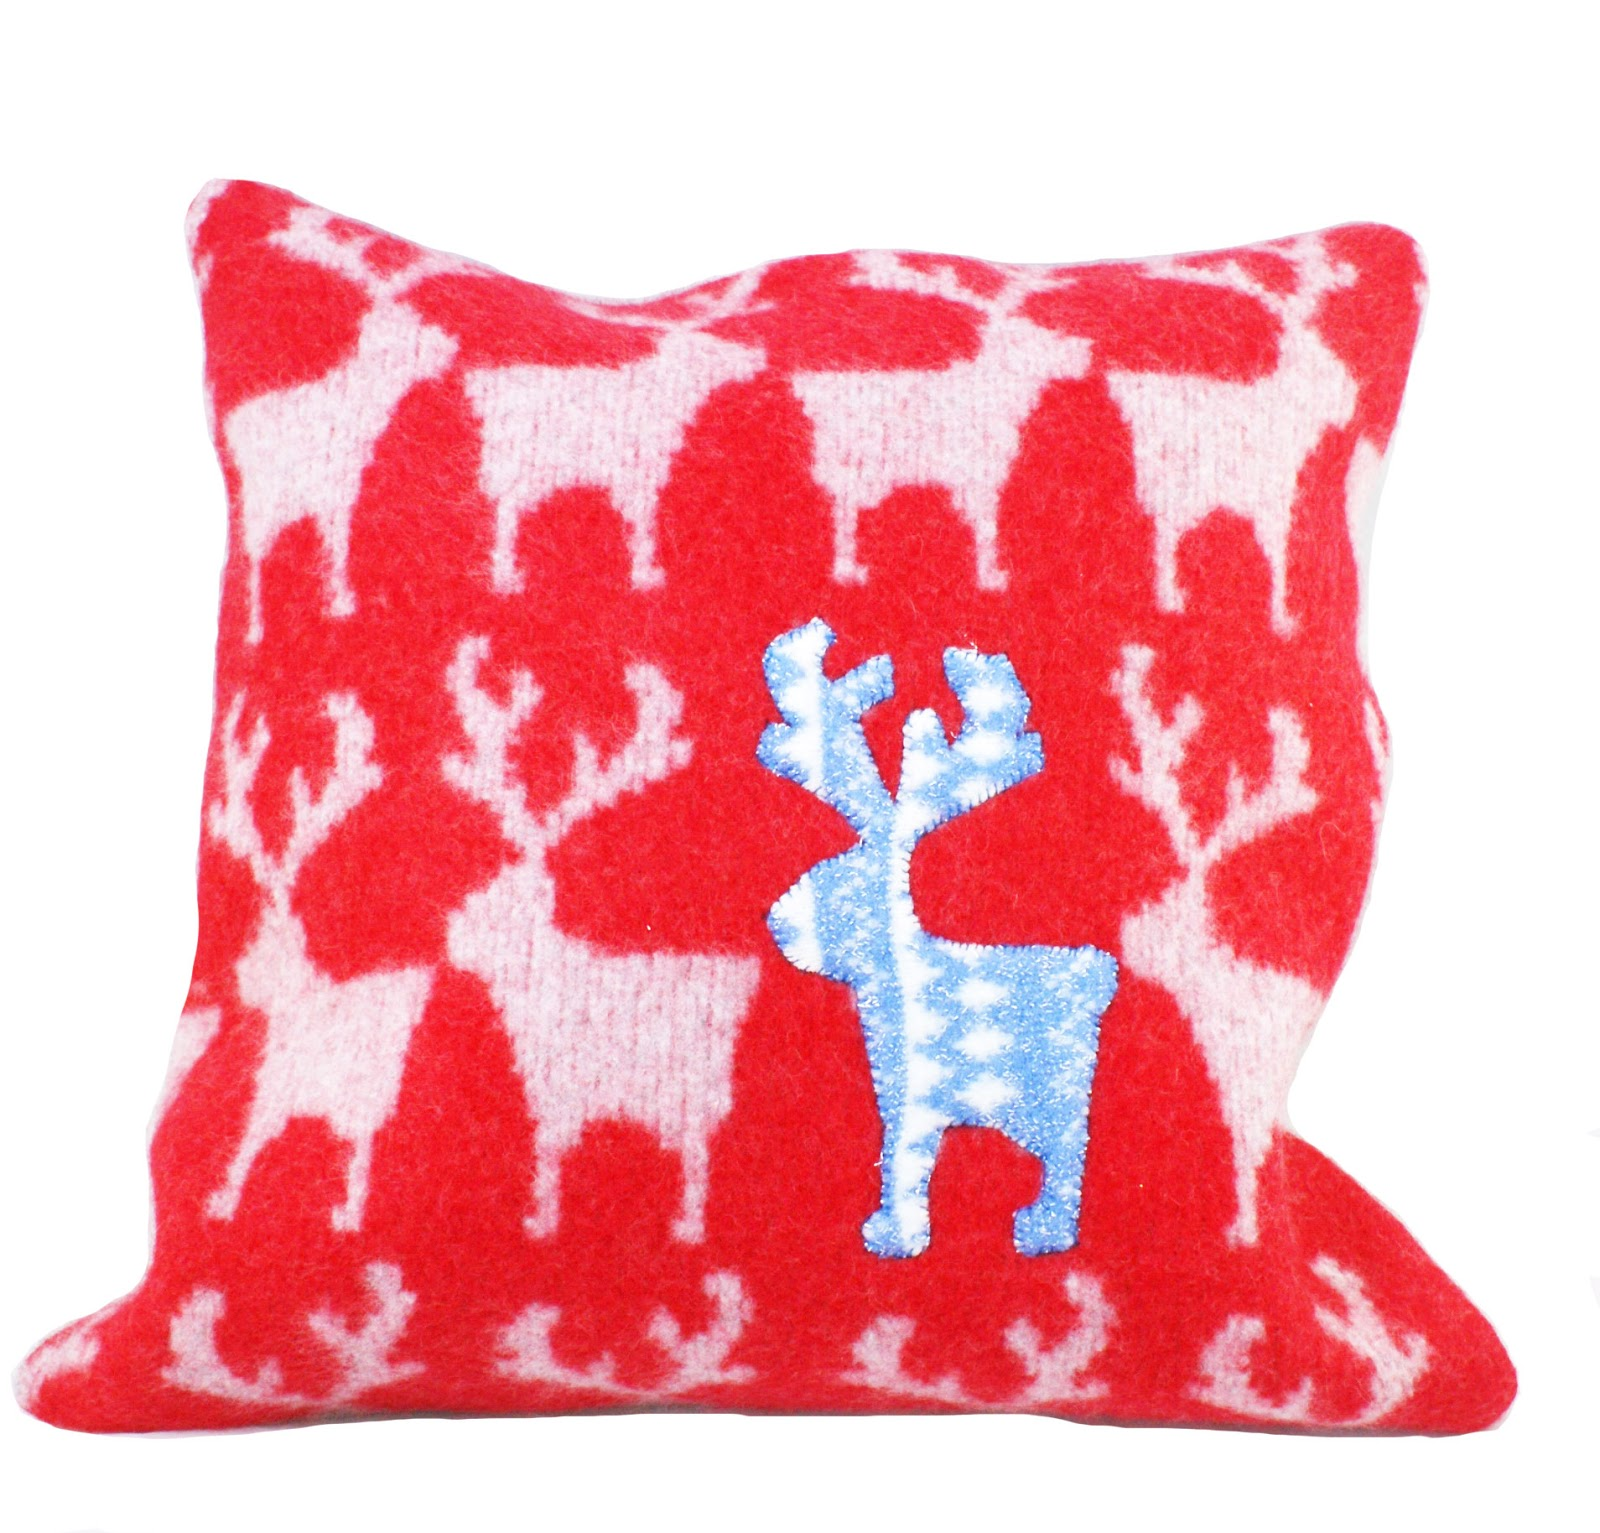 Reindeer Cushion Knitting Pattern : Victoria Logan Knitted Textiles